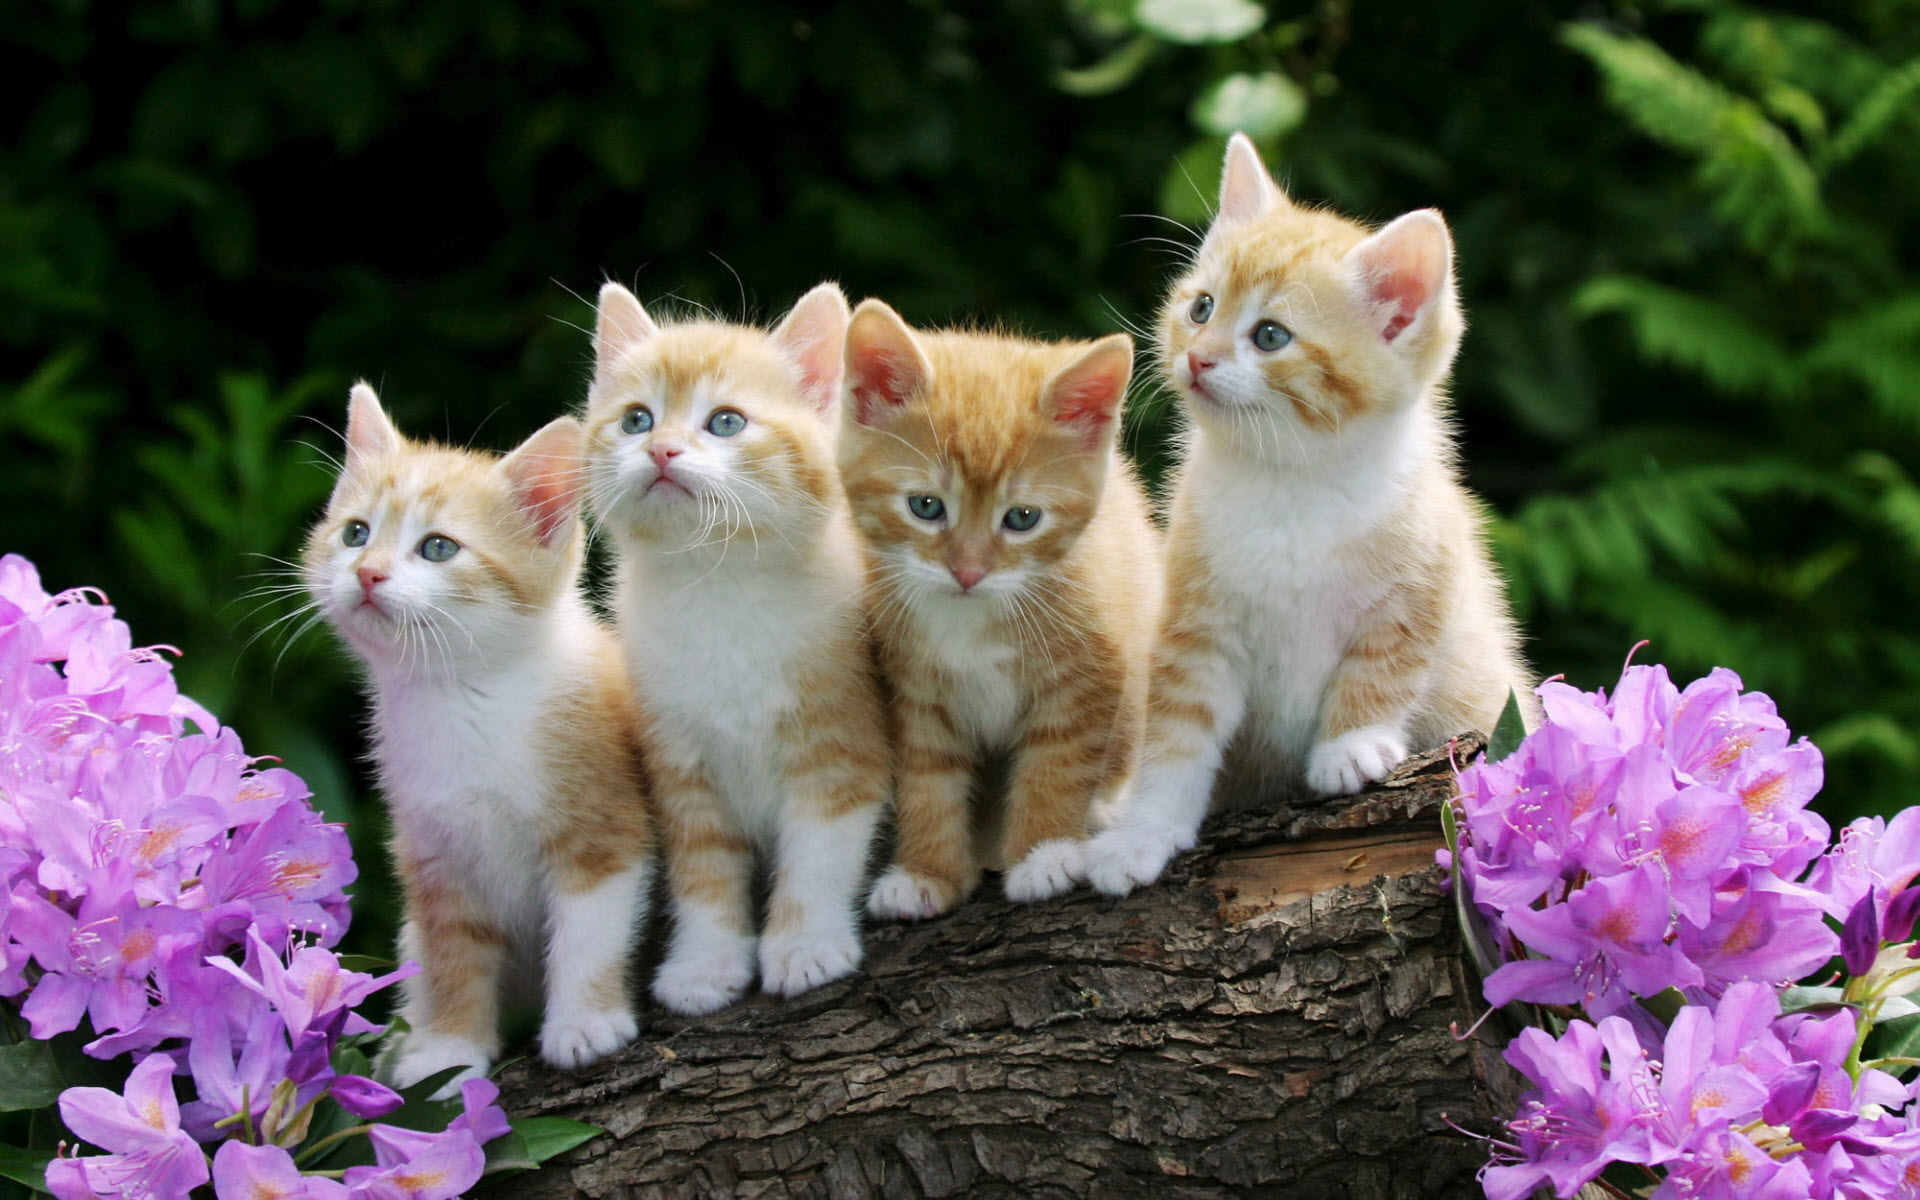 Cute Kittens Pictures - Cute Kittens Pictures